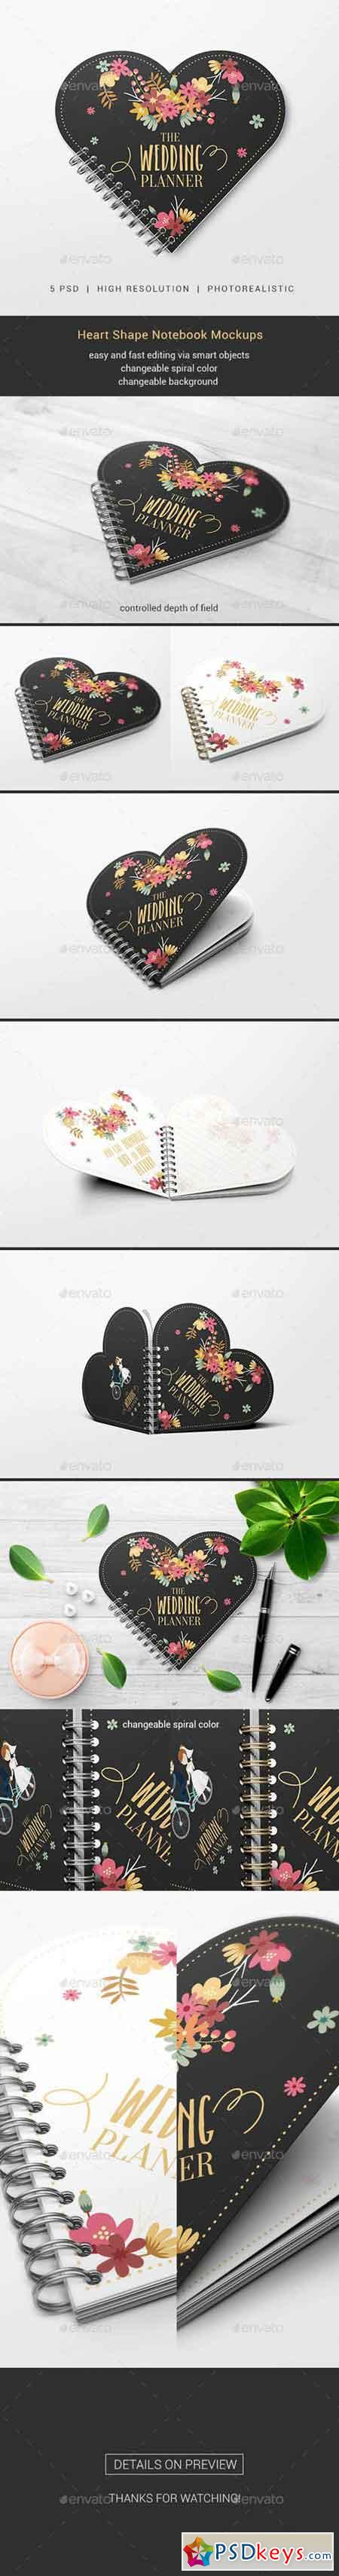 Heart Shape Notebook Mockups 19872404